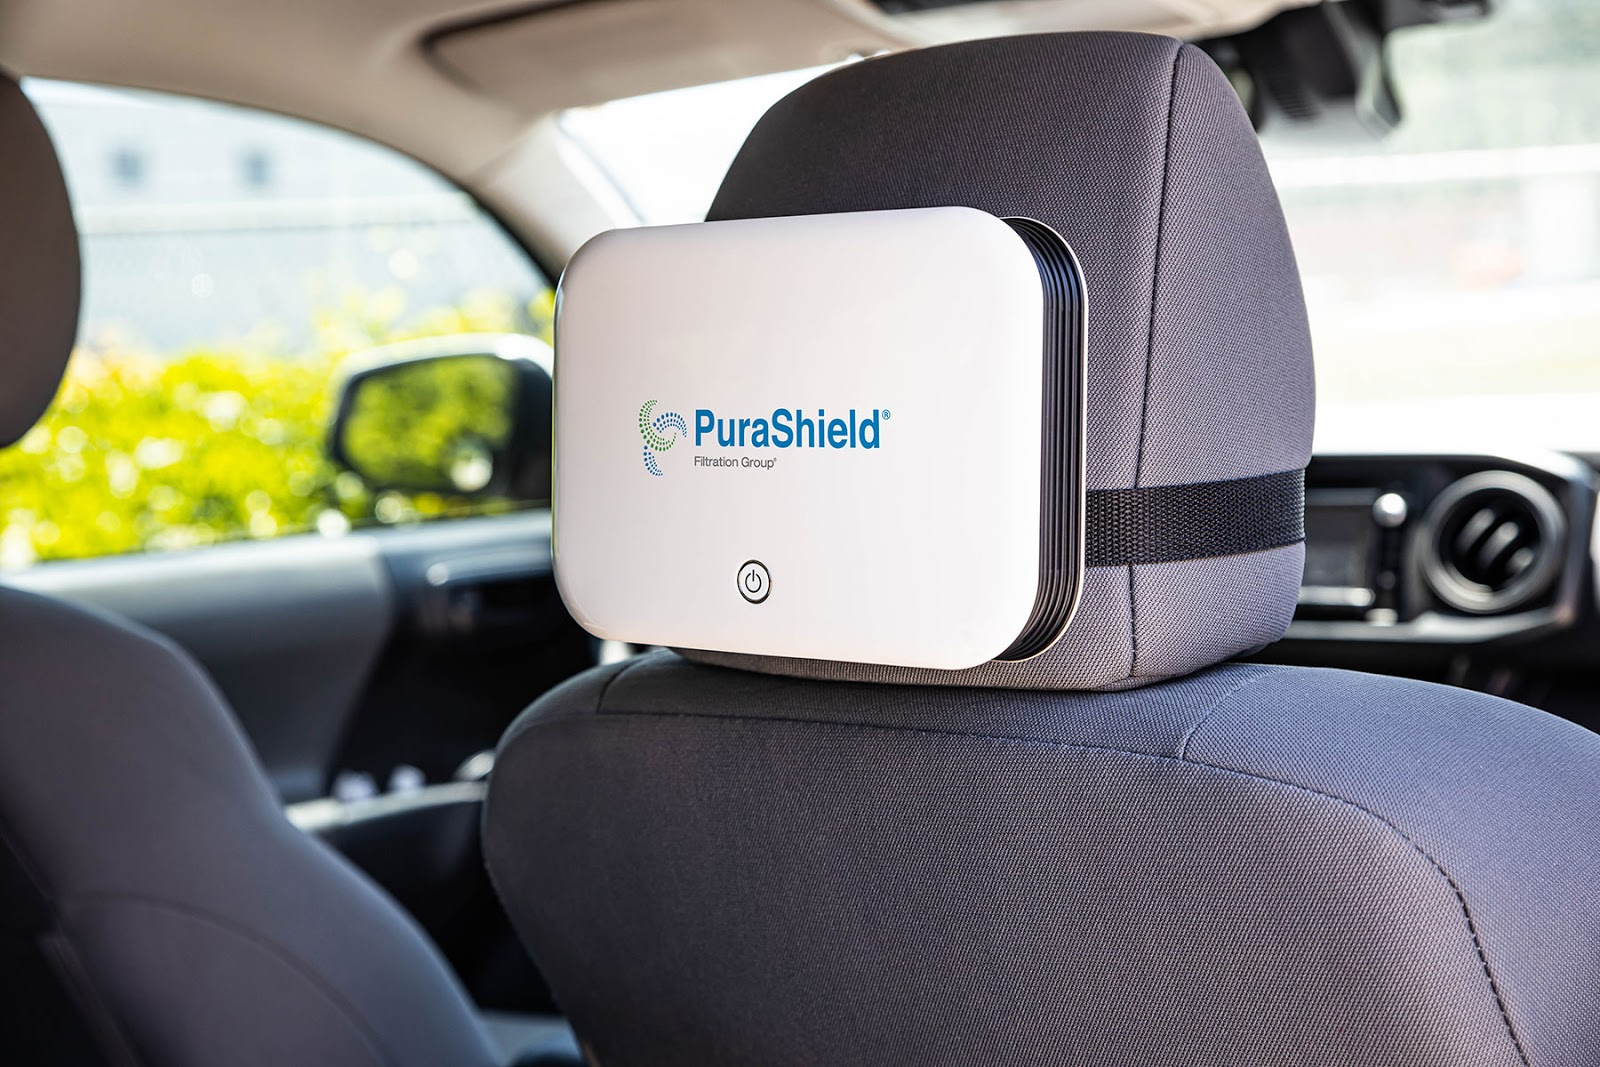 PuraShield Mini: A Small But Powerful Air Purifier for Uber and Lyft Drivers